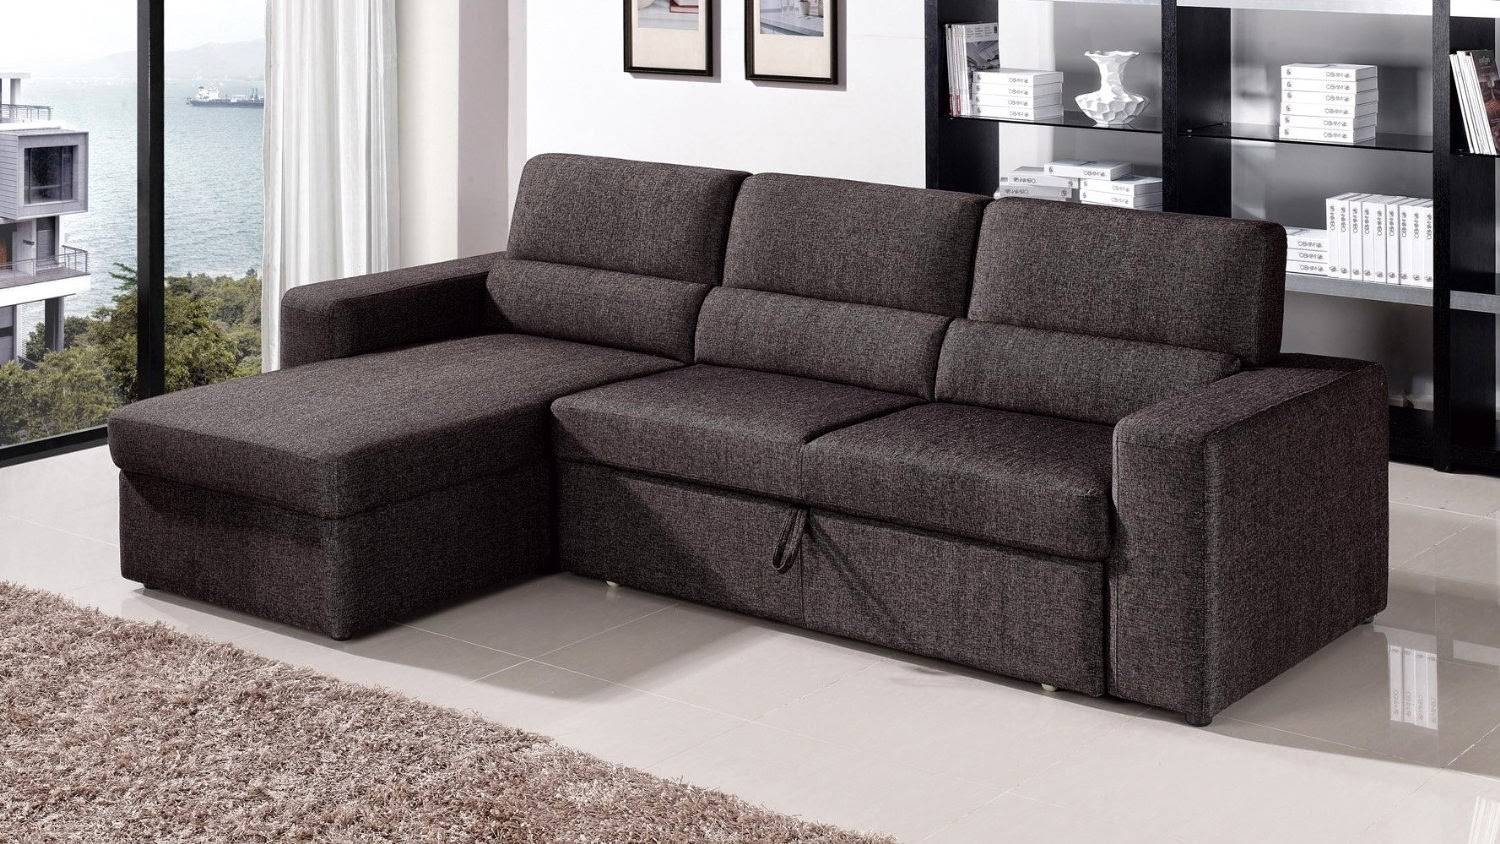 Elegant Sectional Sofa With Pull Out Sleeper 60 In Sofa Sleeper with regard to Sectional Sofa San Diego (Image 7 of 30)